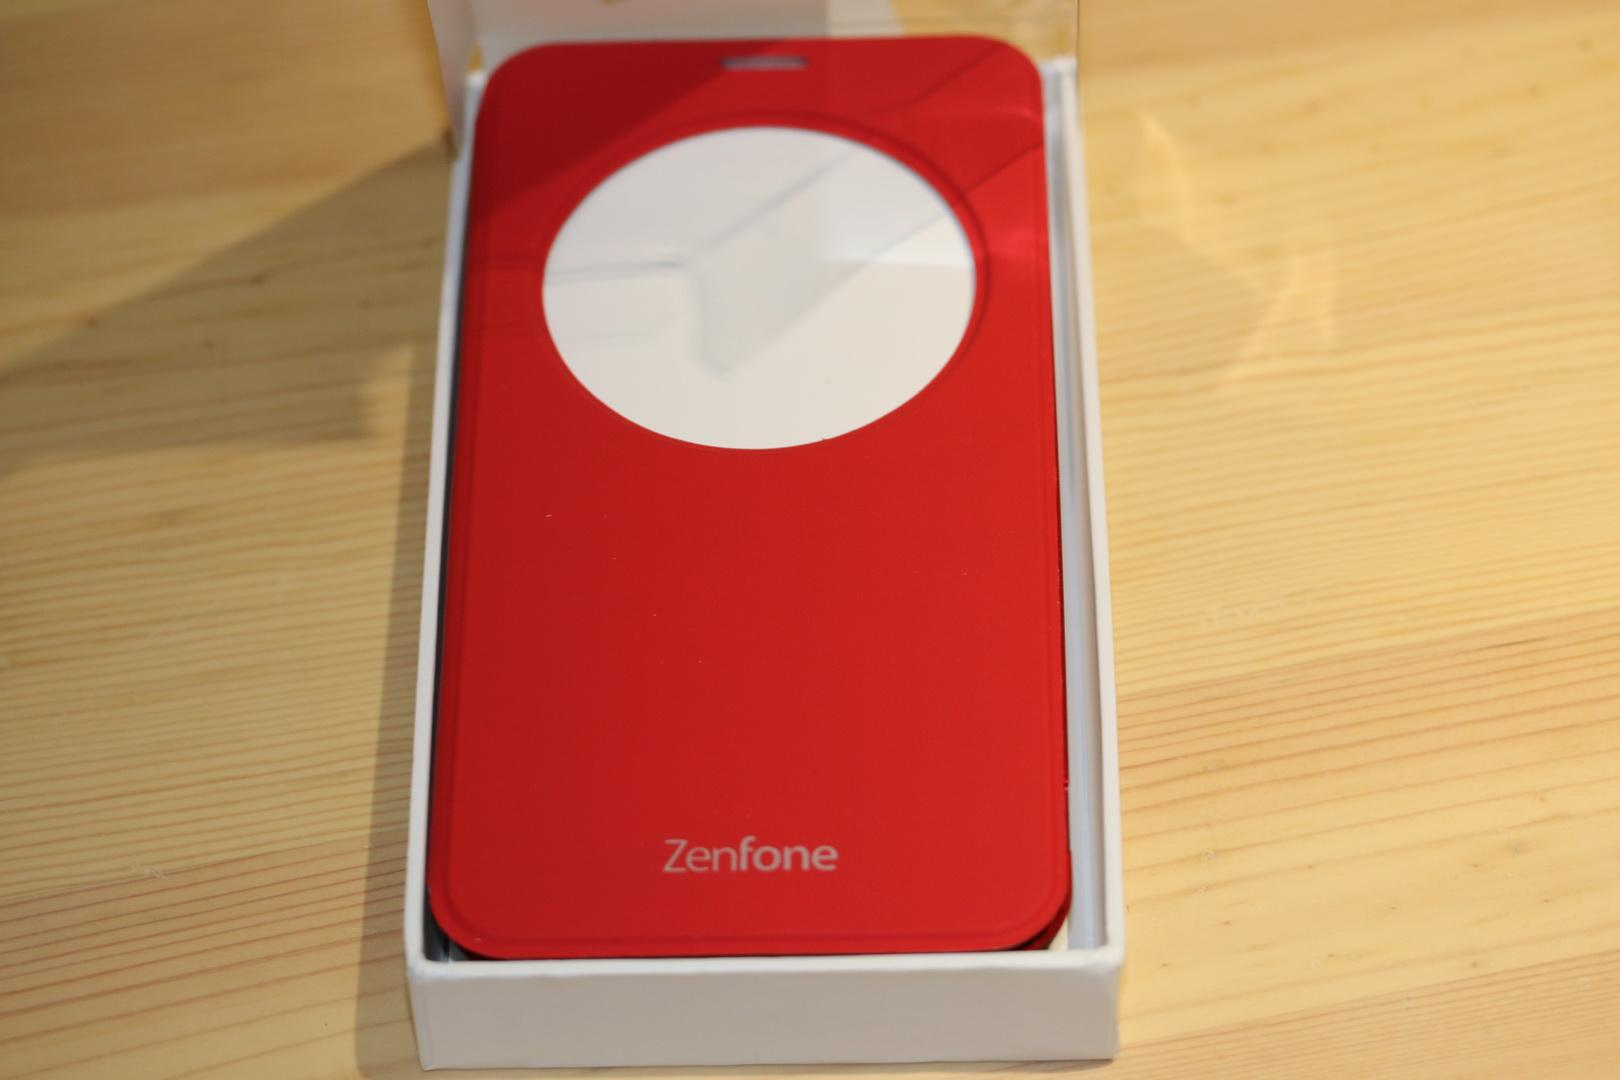 [開箱] 一機難求Zenfone2 ZE551ML 4GB-32GB入手開箱 - XFastest - 008.JPG